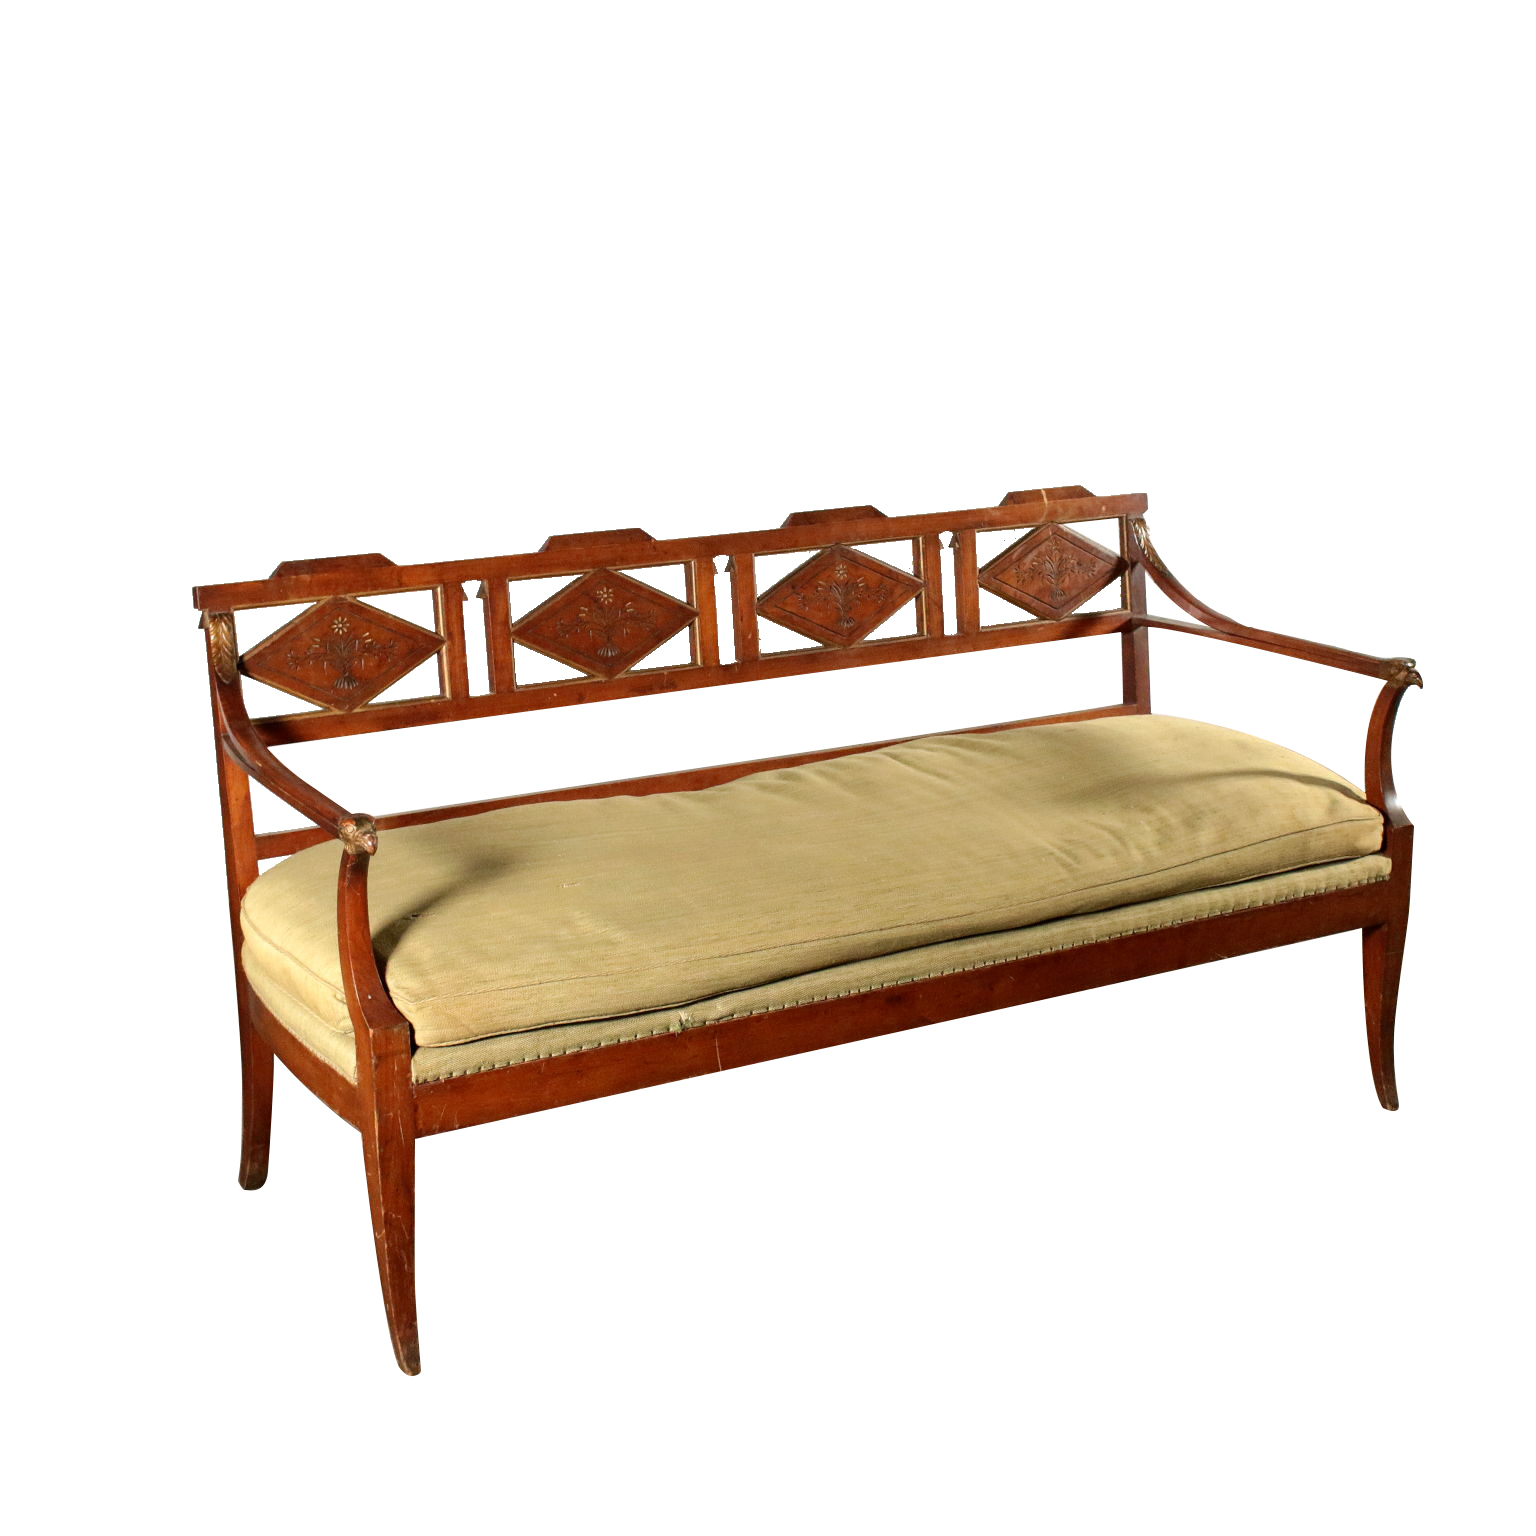 Elegant Sofa Cherry Wood Italy Early 1800s